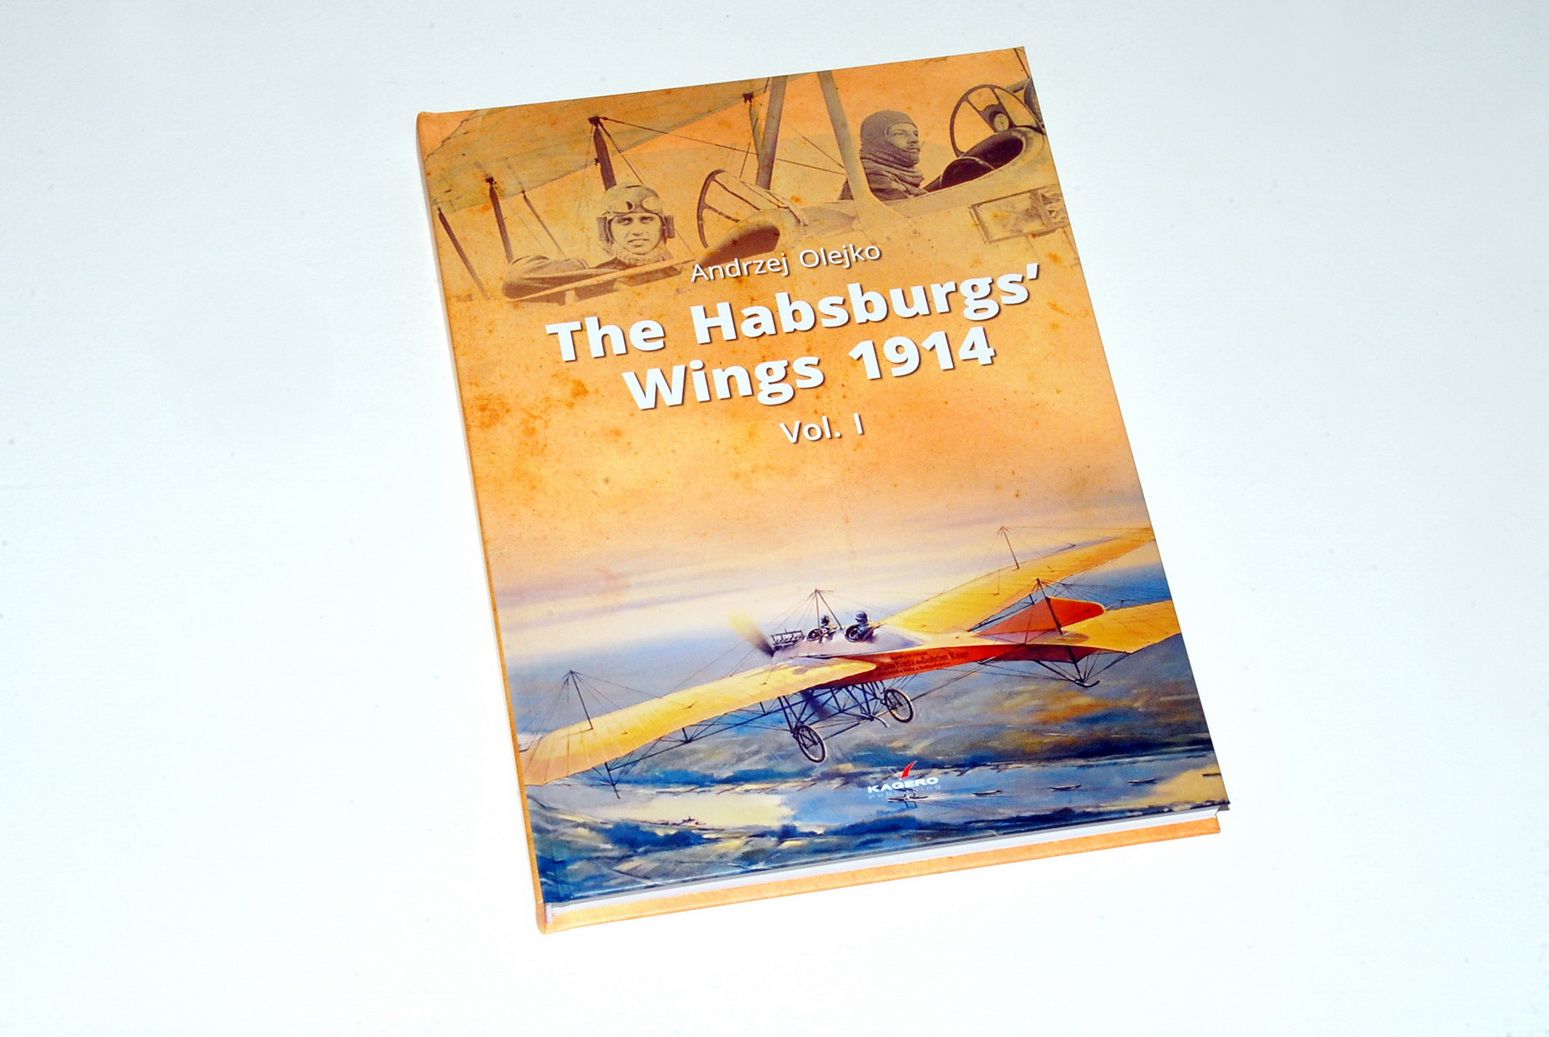 The Hapsburgs' Wings 1914, Vol.1 by Andrzej Olejko (Kagero 2018)